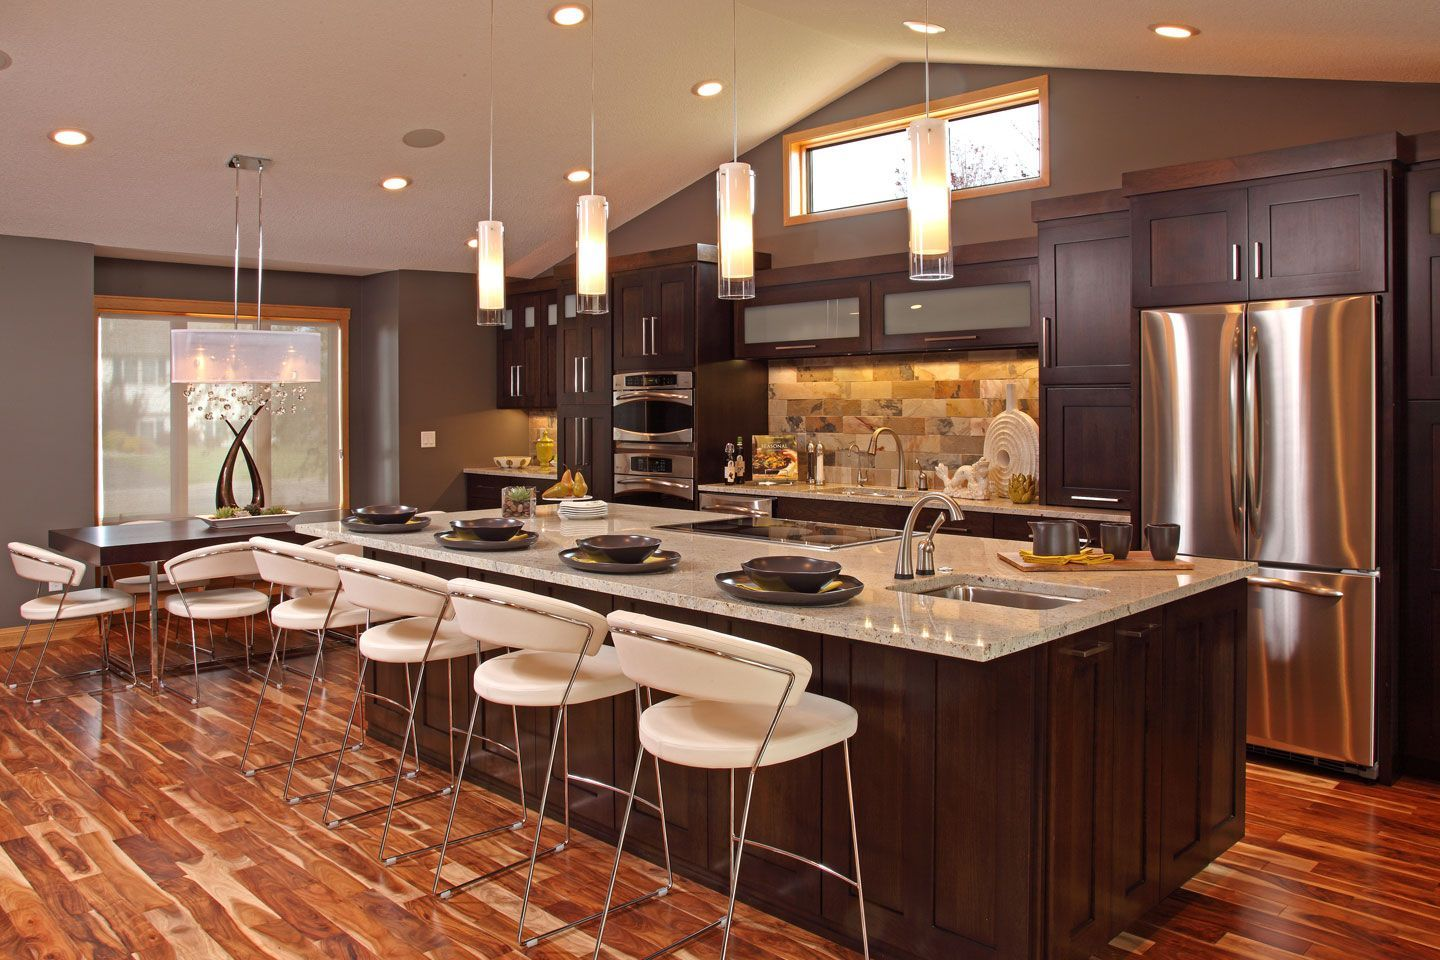 Open Galley Kitchens With Islands